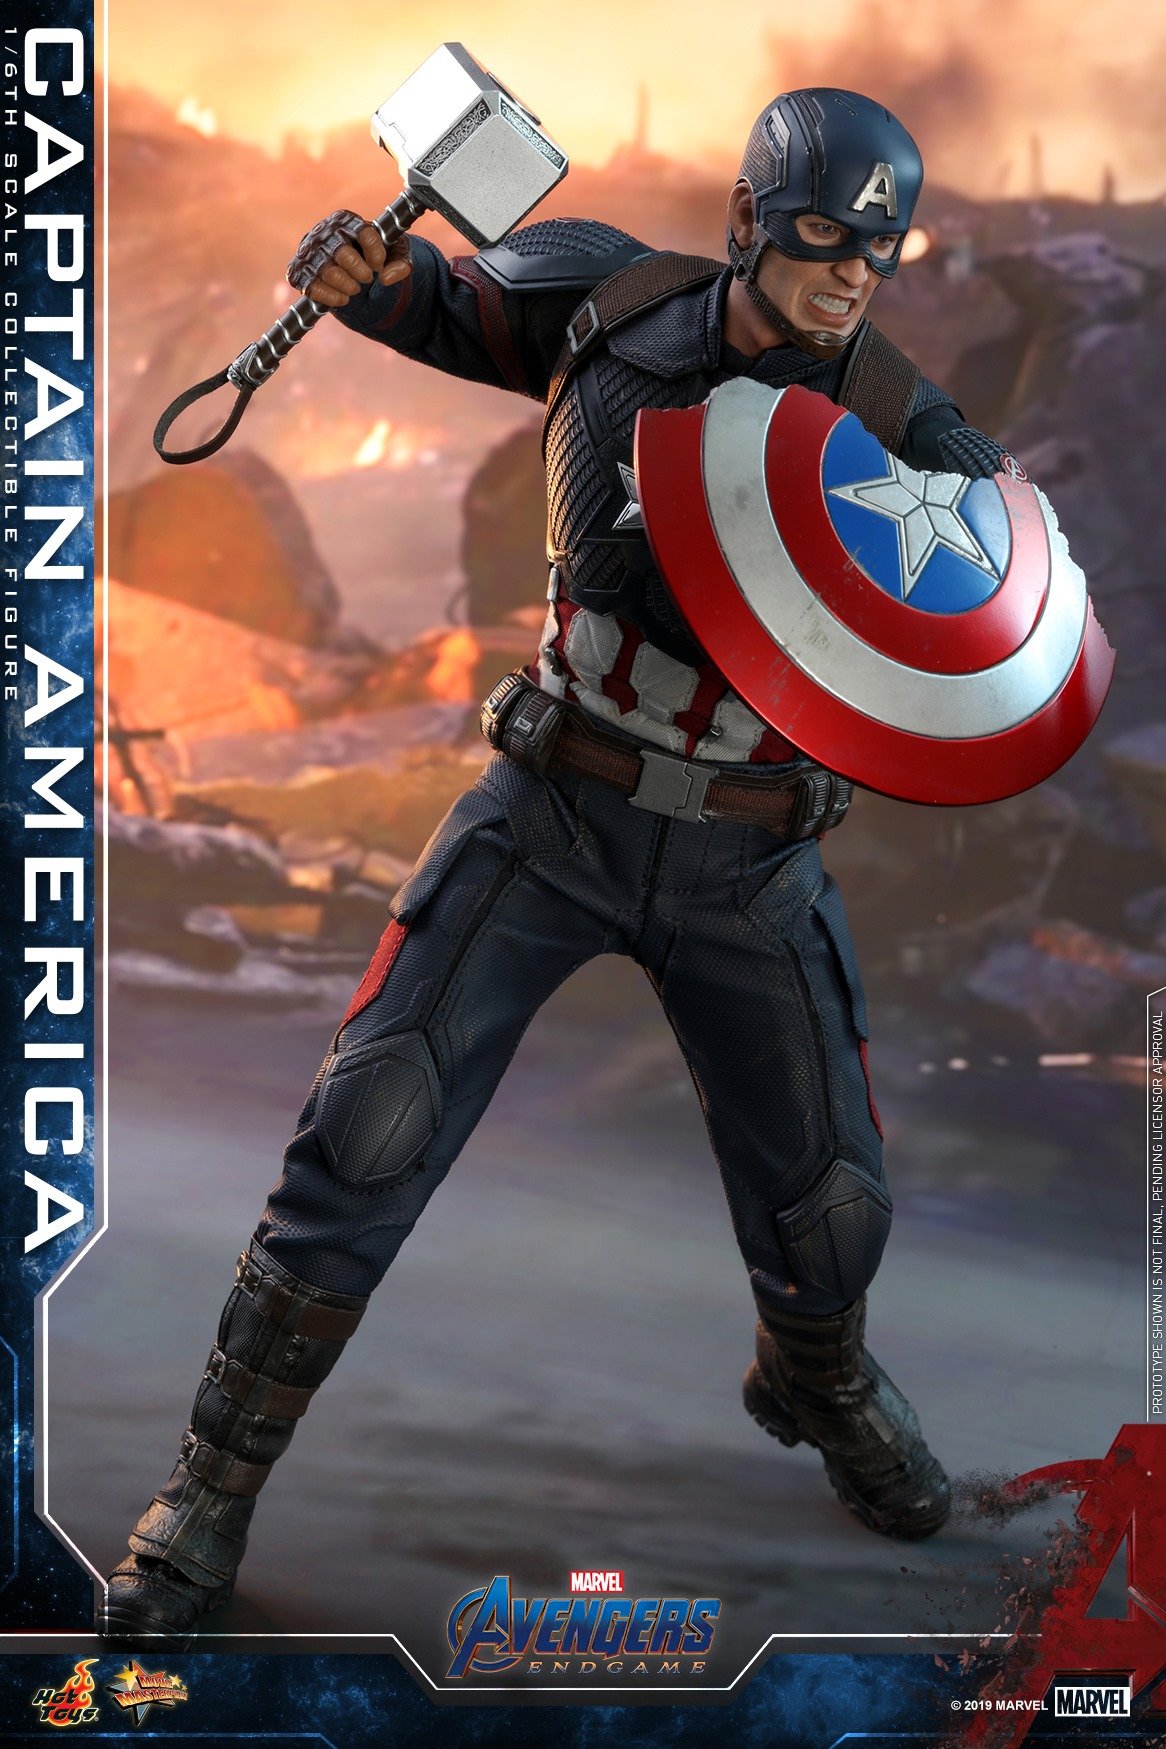 Avengers Endgame Captain America 16 Scale Figure Update From Hot